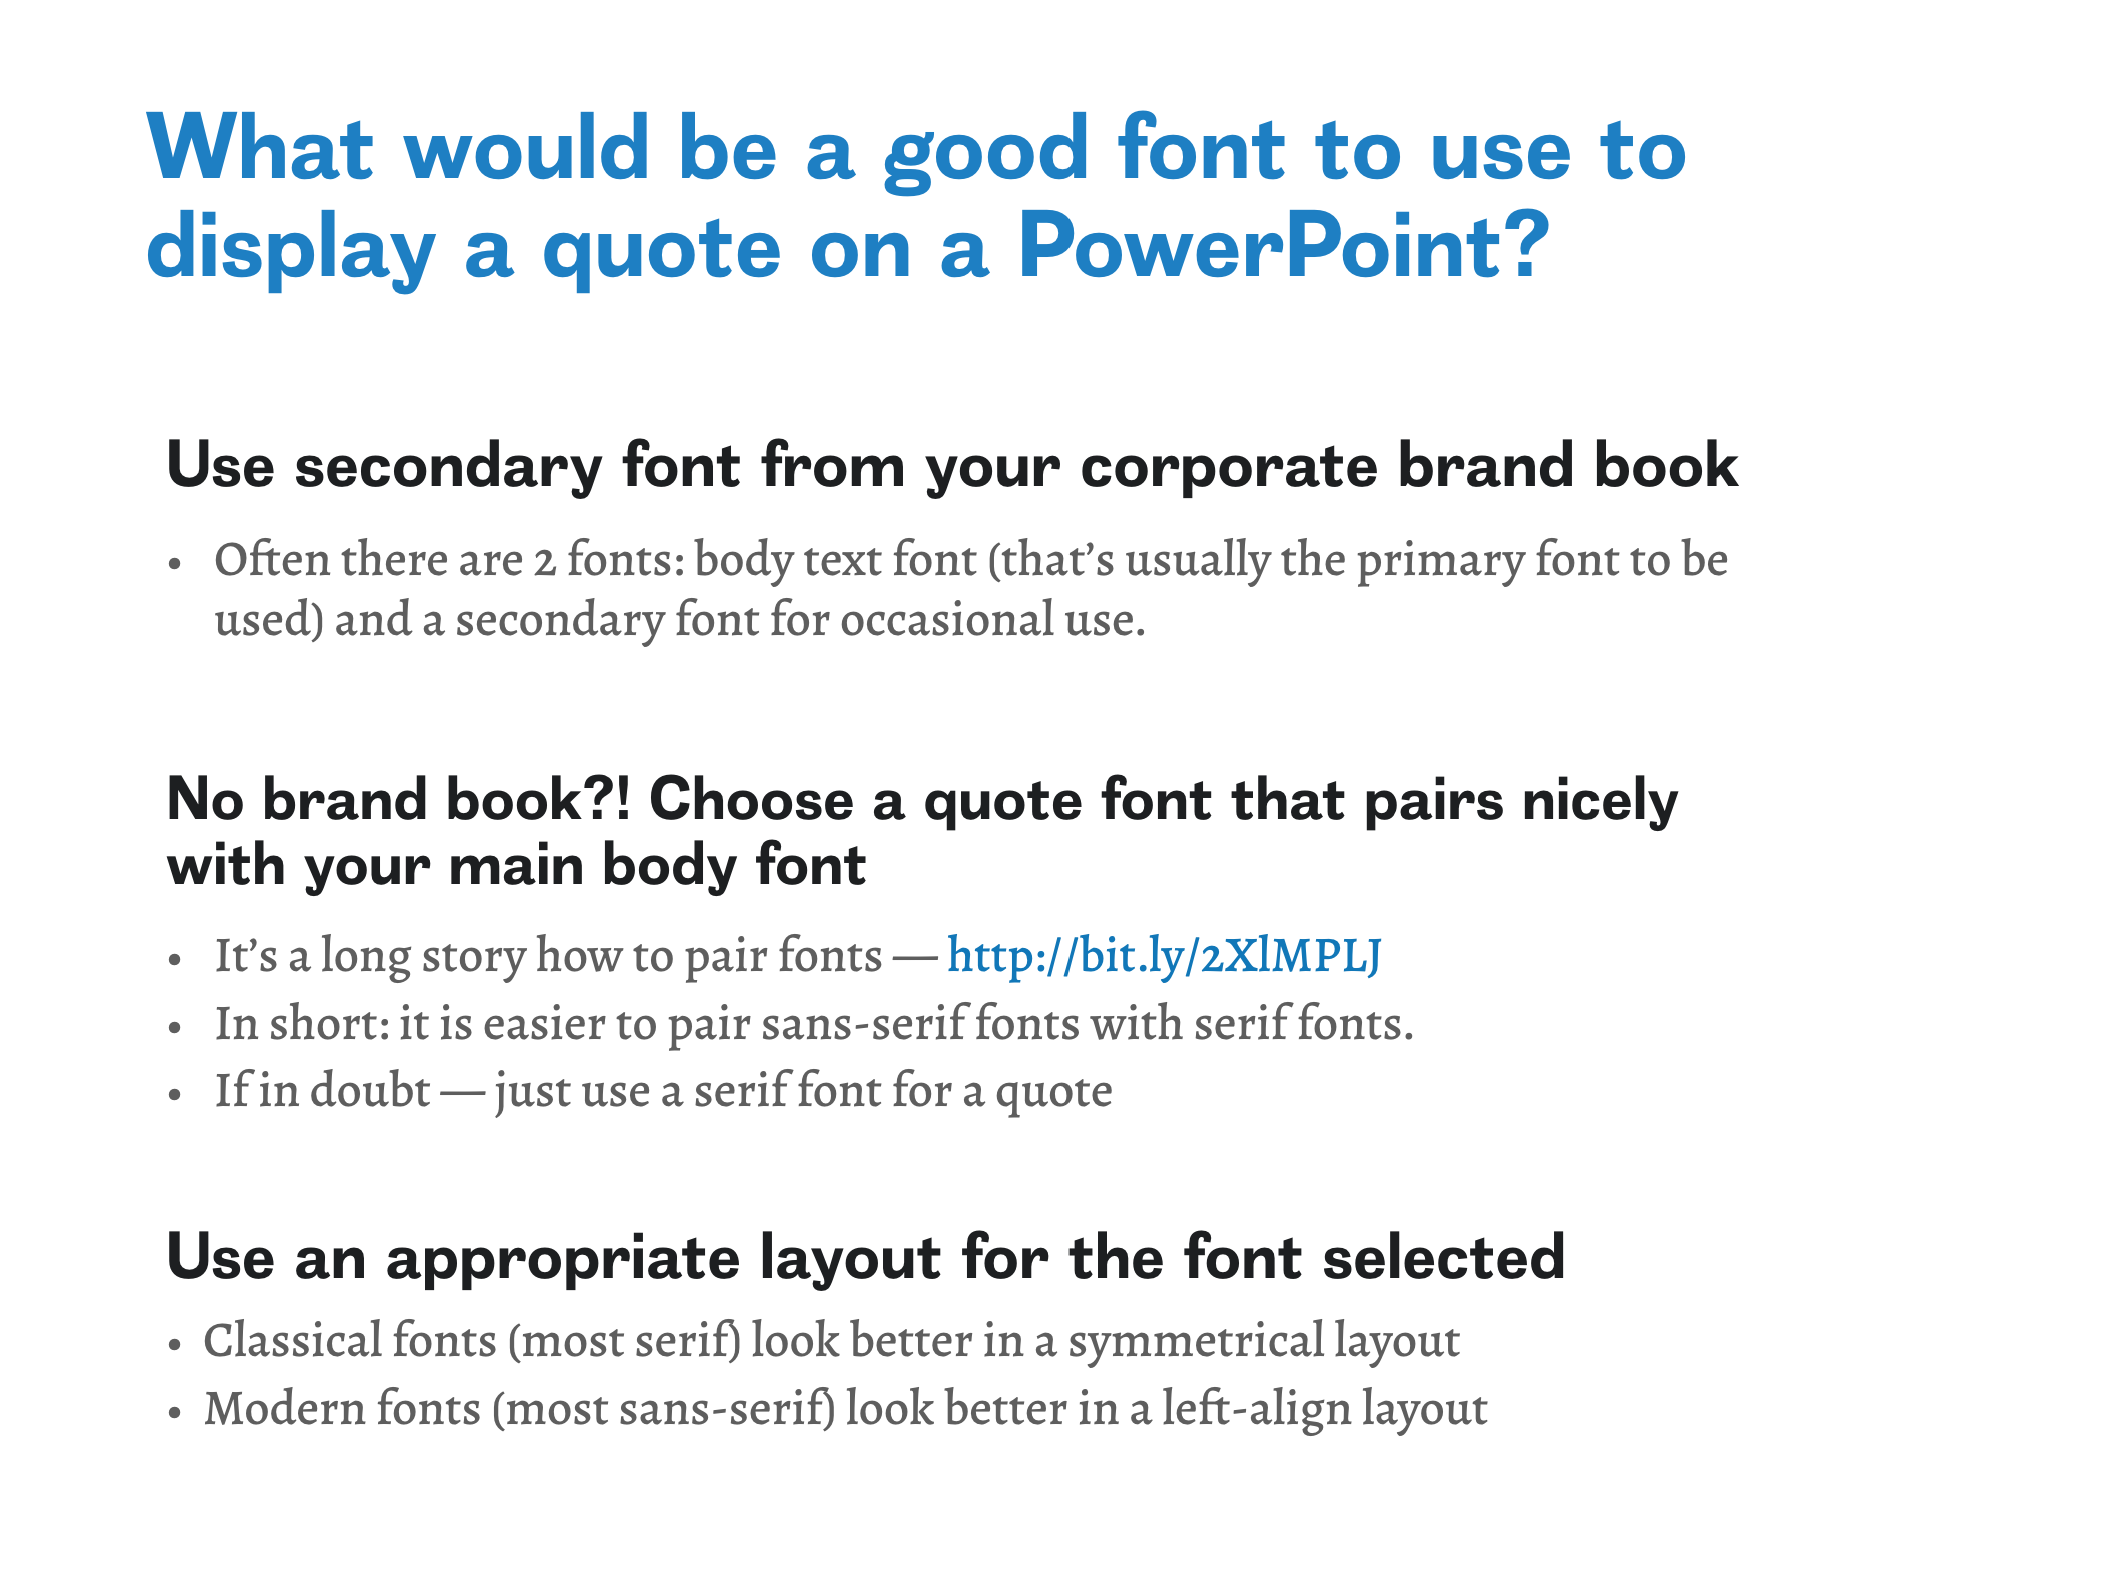 What would be a good font to use to display a quote on a PowerPoint